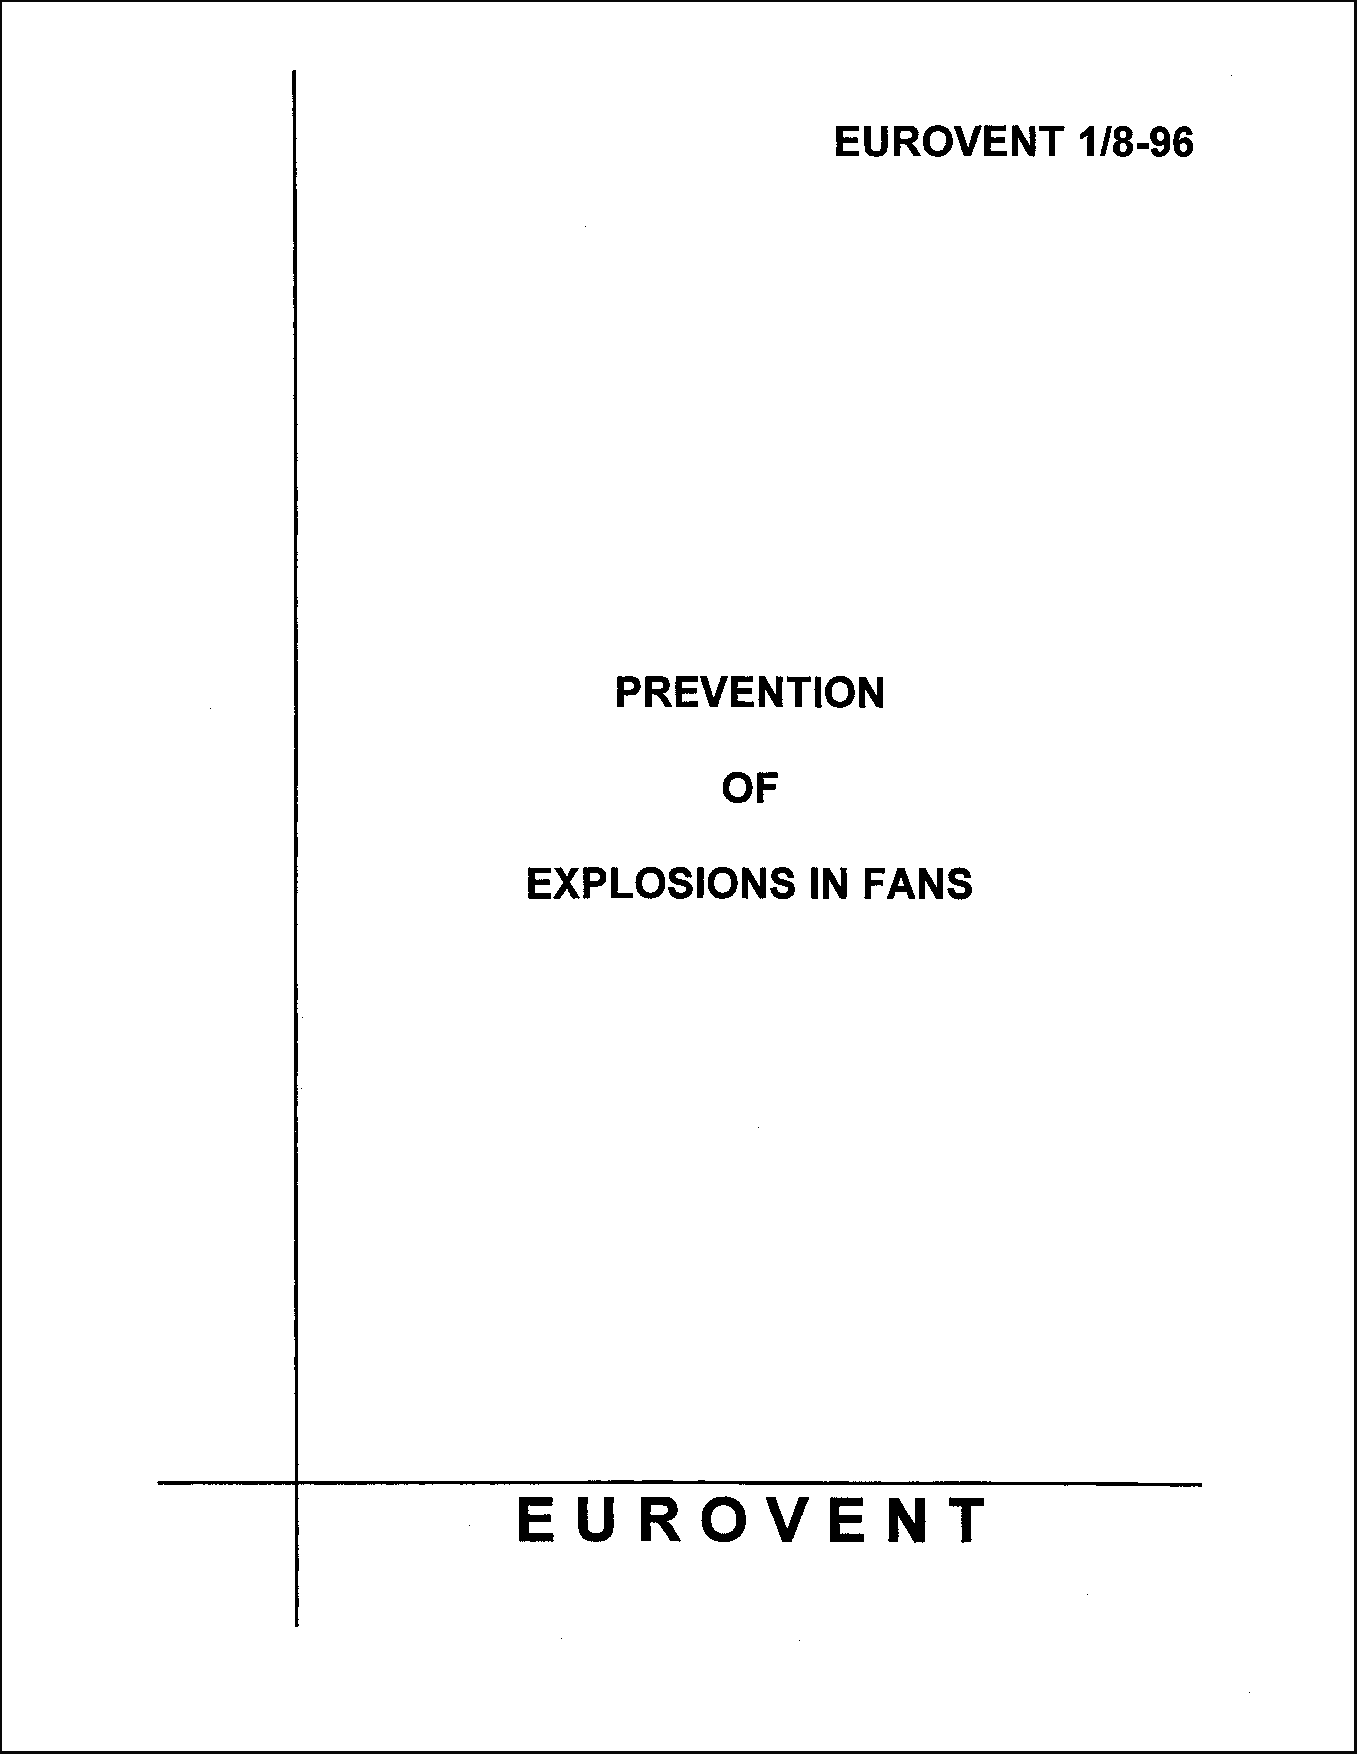 1996 - Prevention of explosions in fans